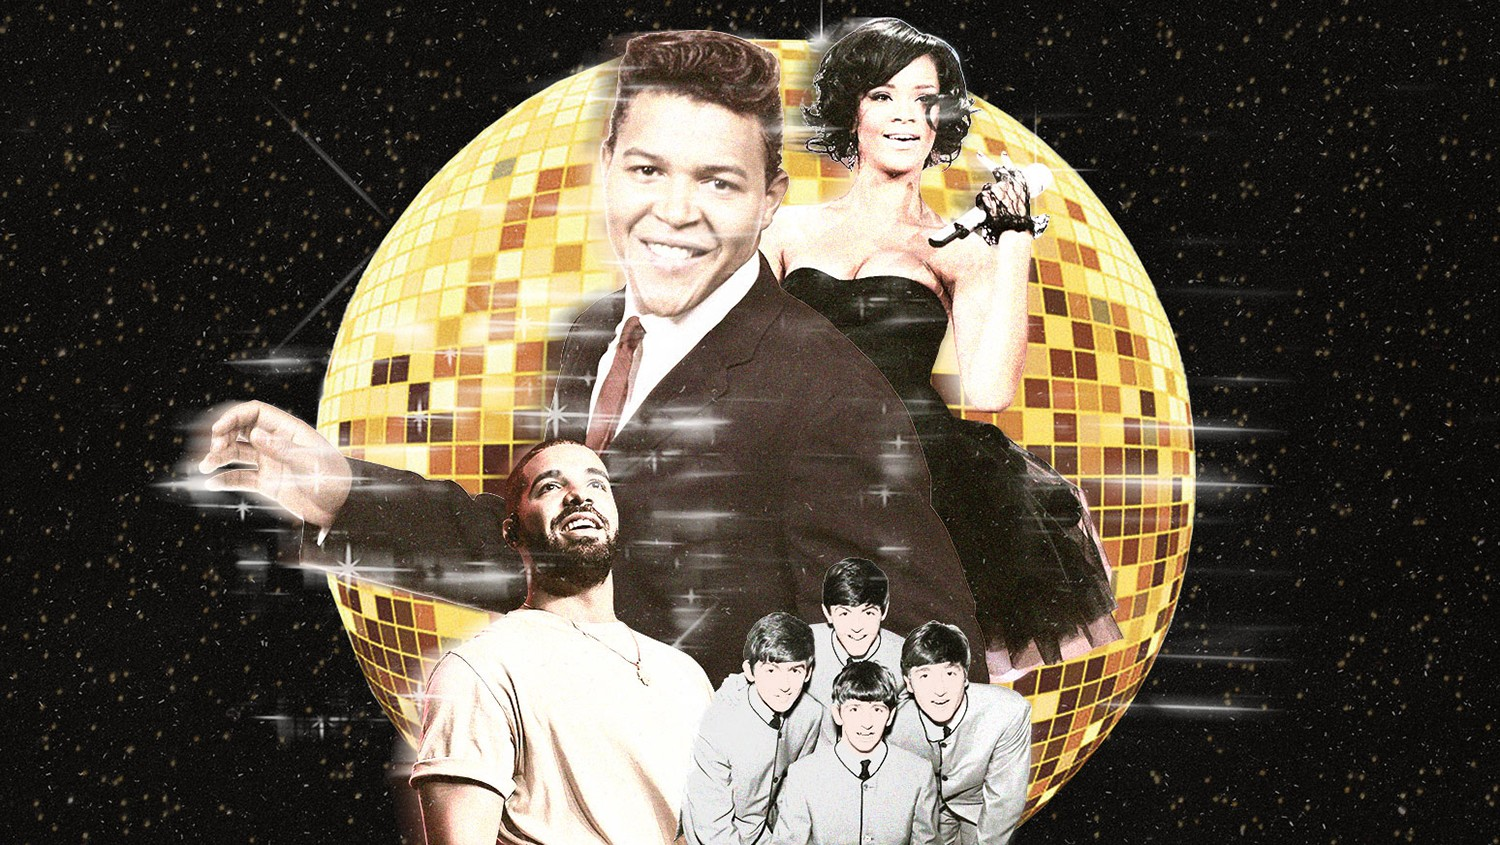 Chubby Checker, Rihanna, Drake & The Beatles